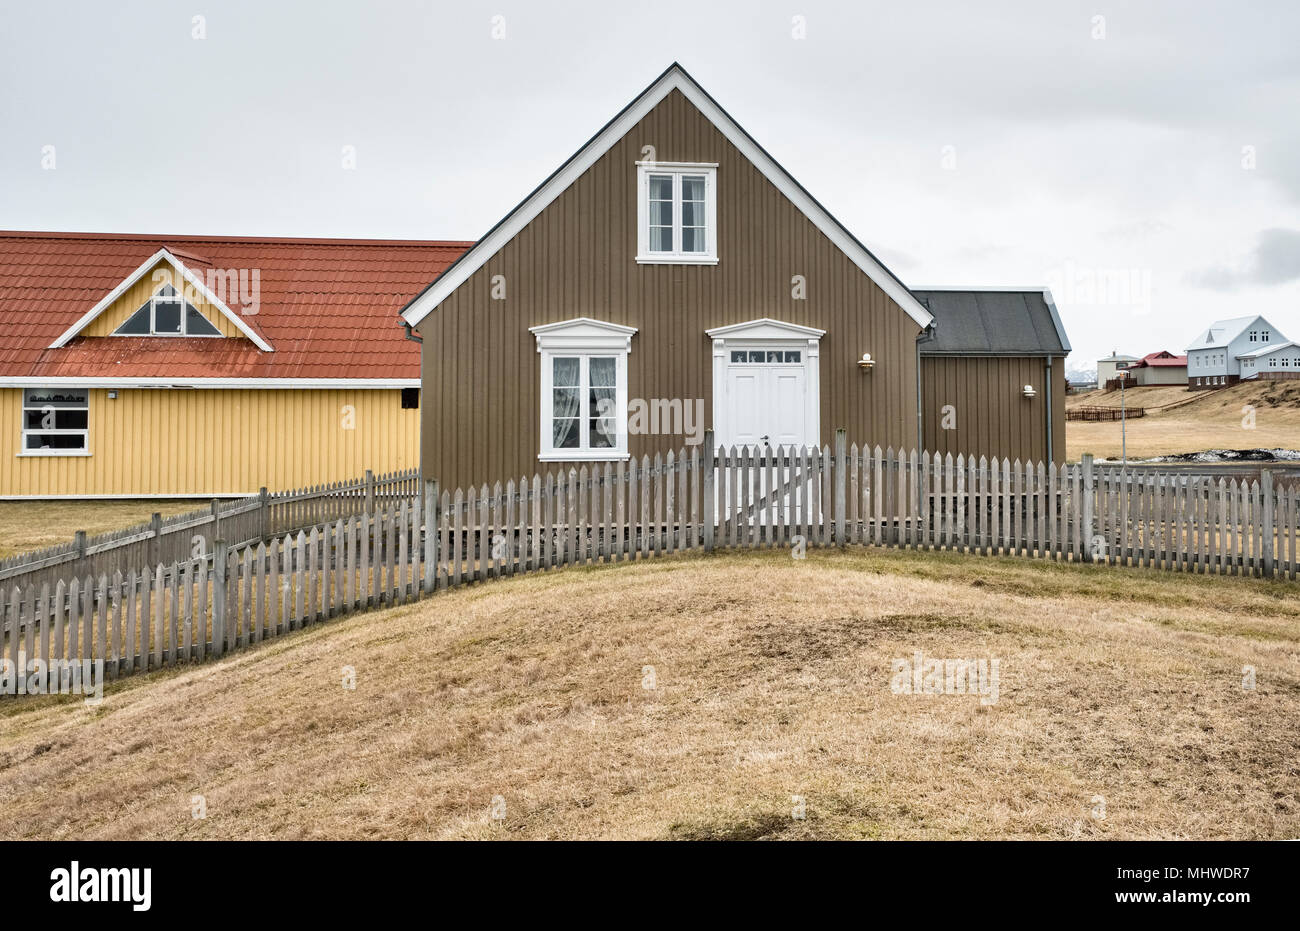 West Iceland - typical houses in the picturesque town of Stykkishólmur on the Snæfellsnes peninsula. - Stock Image